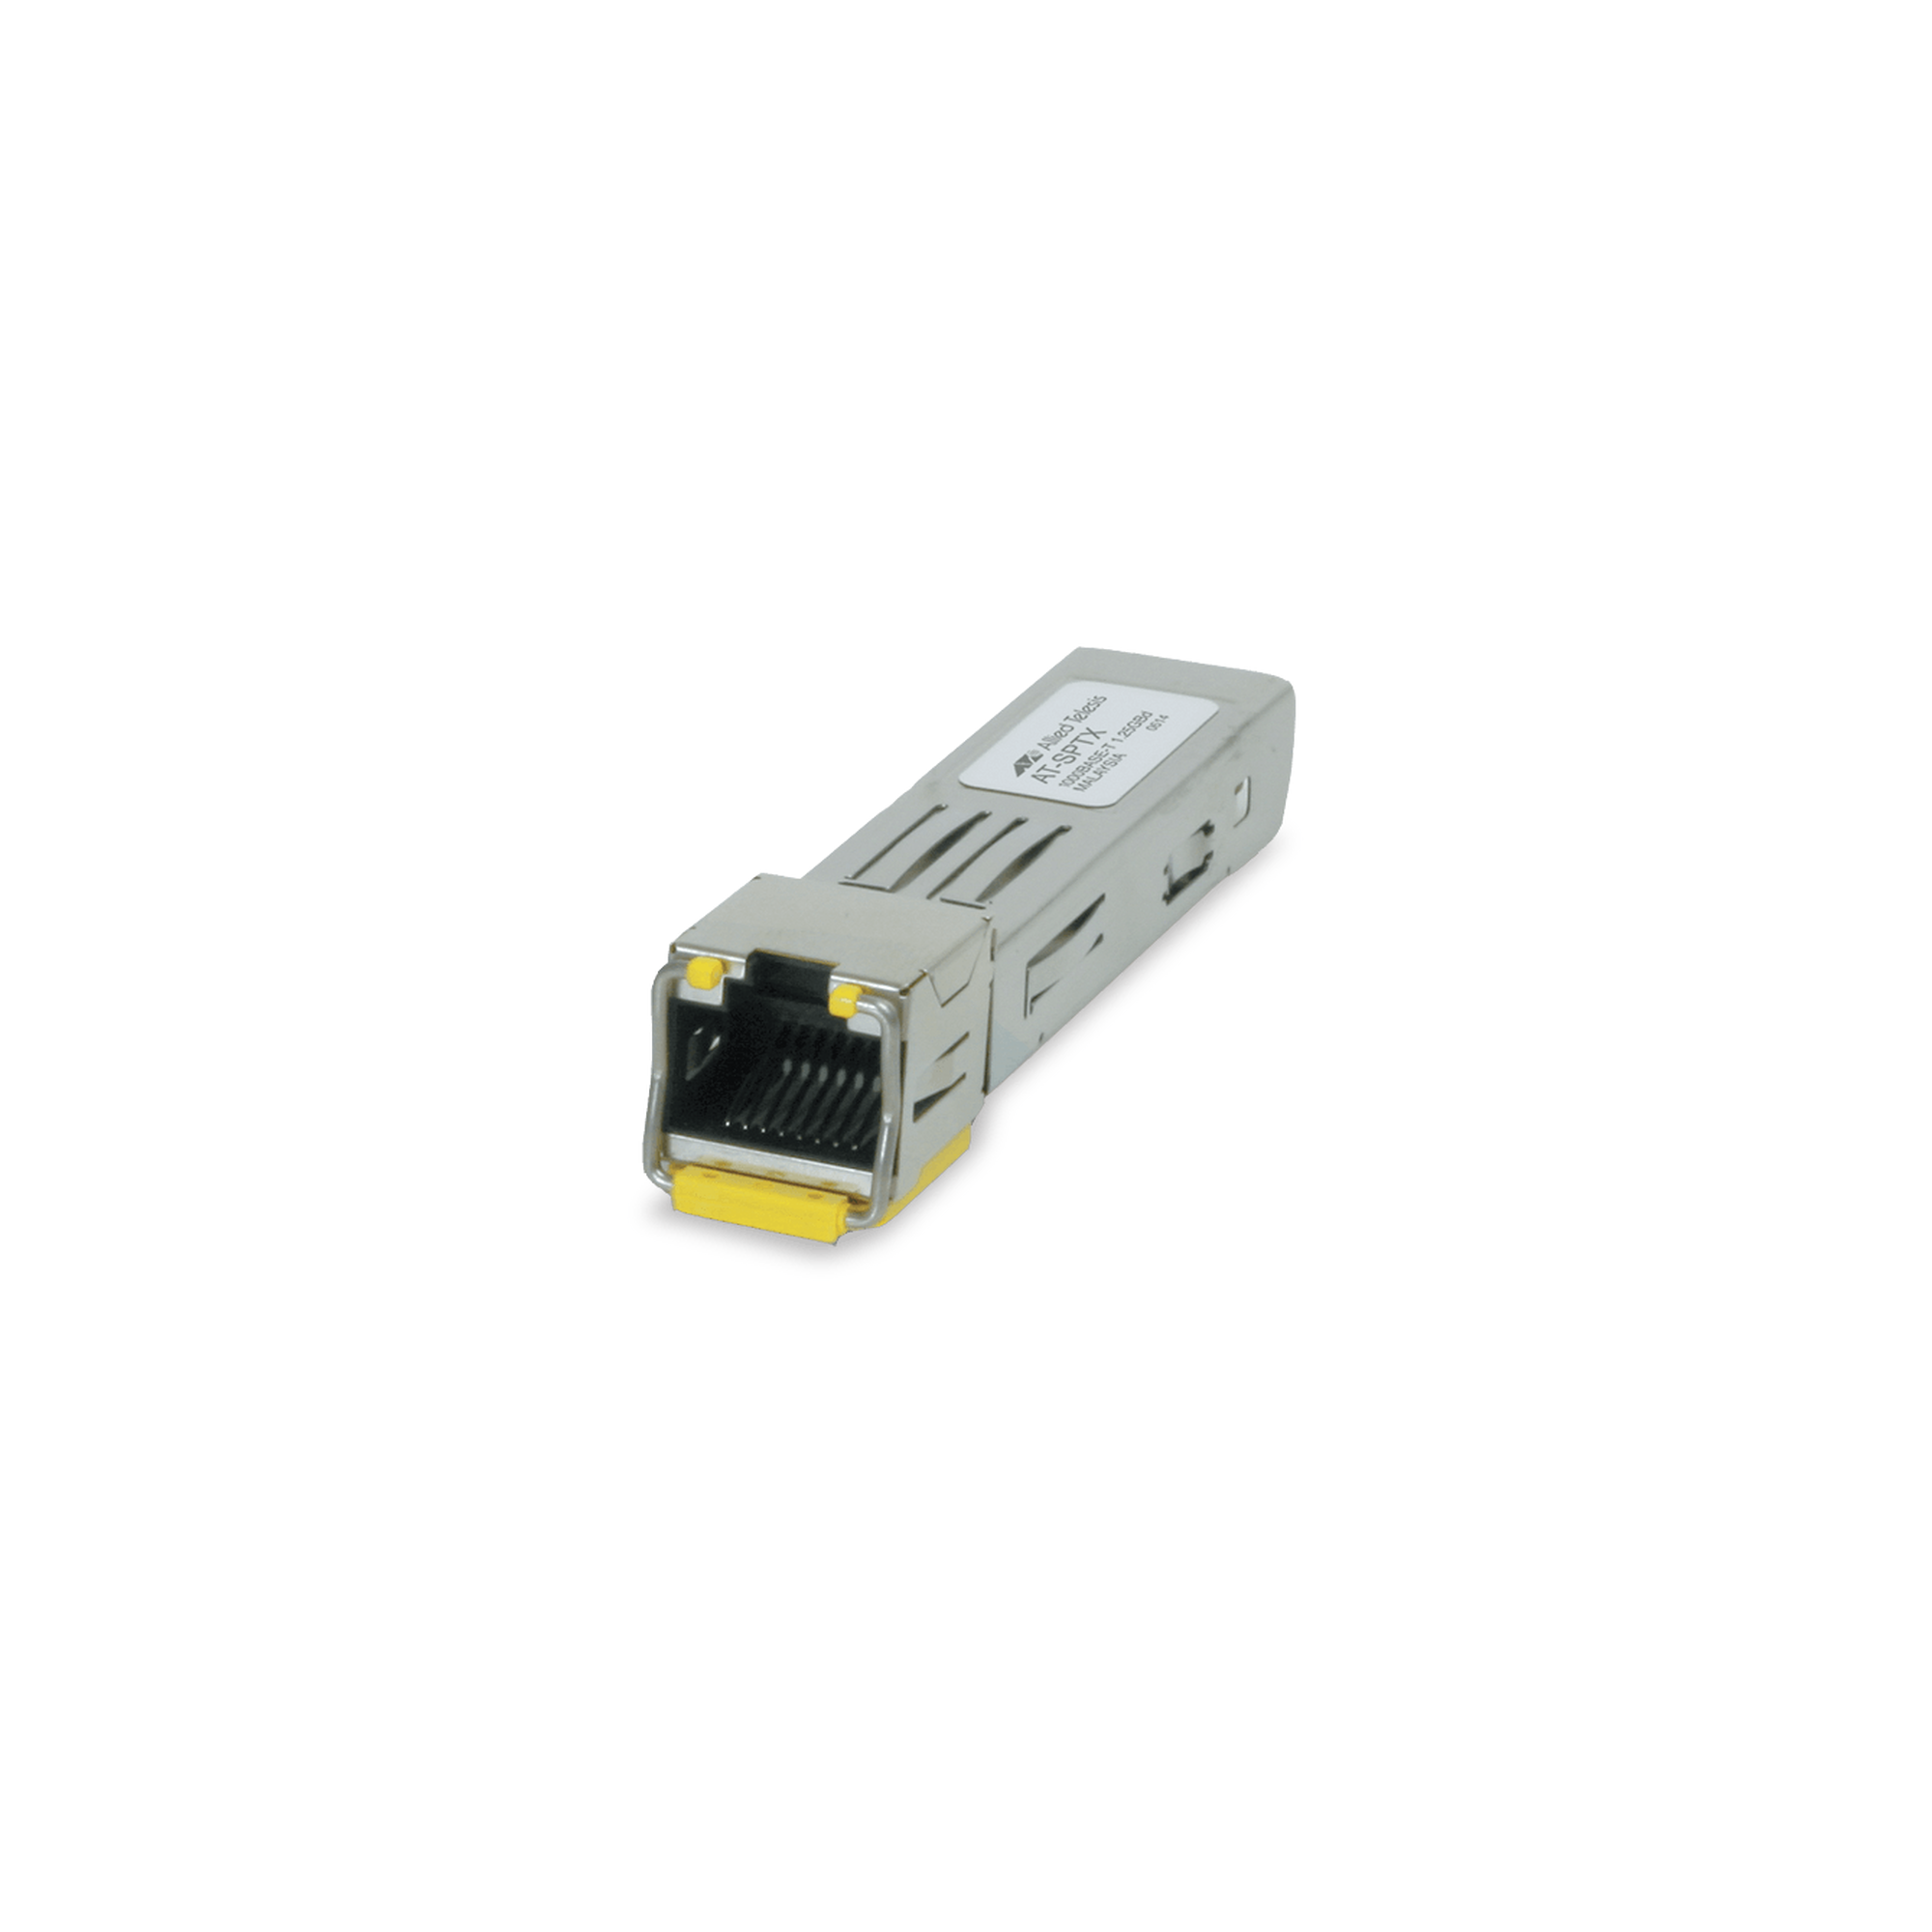 Transceptor MiniGbic SFP 10/100/1000 Mbps, distancia 100 m conector RJ-45